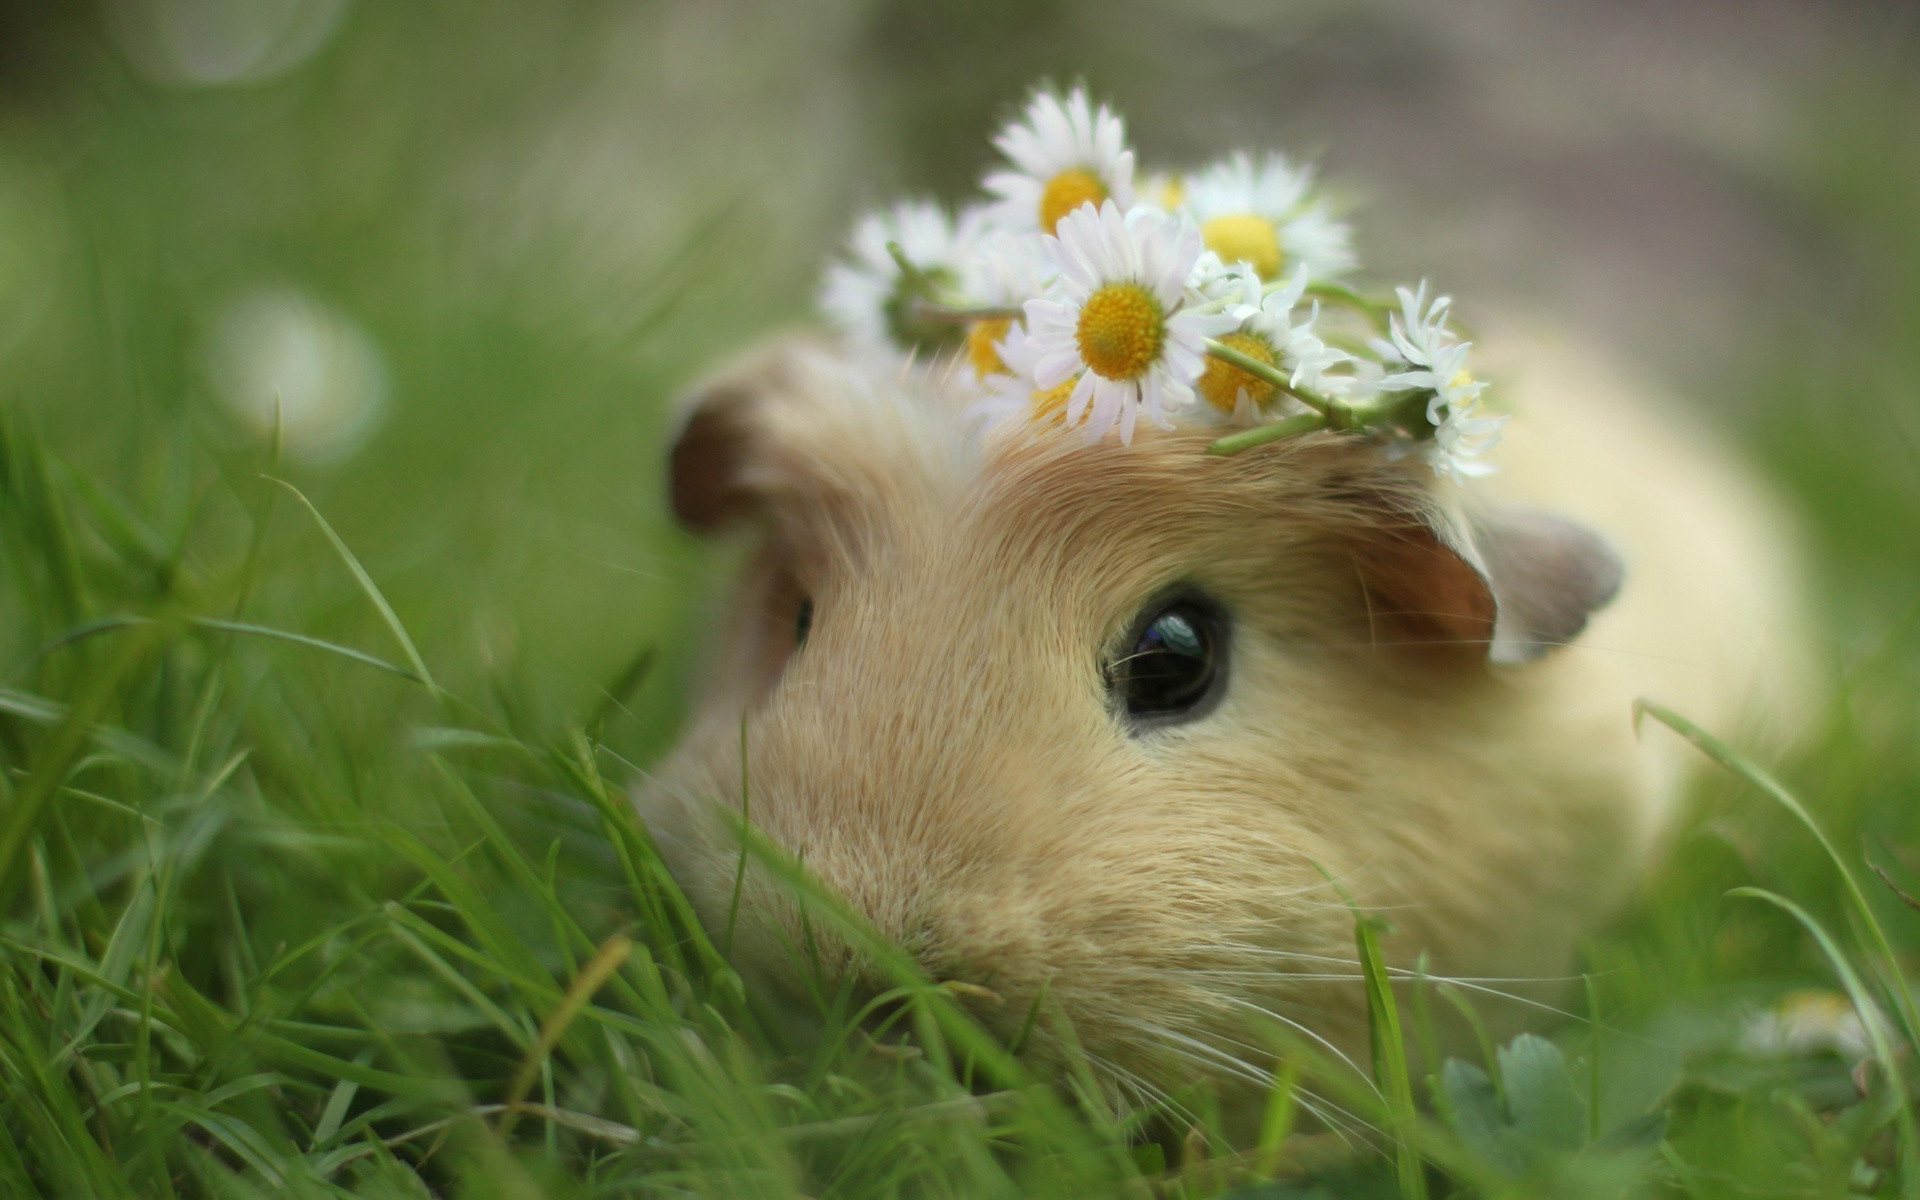 Guinea Pig Computer Wallpapers, Desktop Backgrounds 1920×1080 Pictures Of  Guinea Pigs Wallpapers (